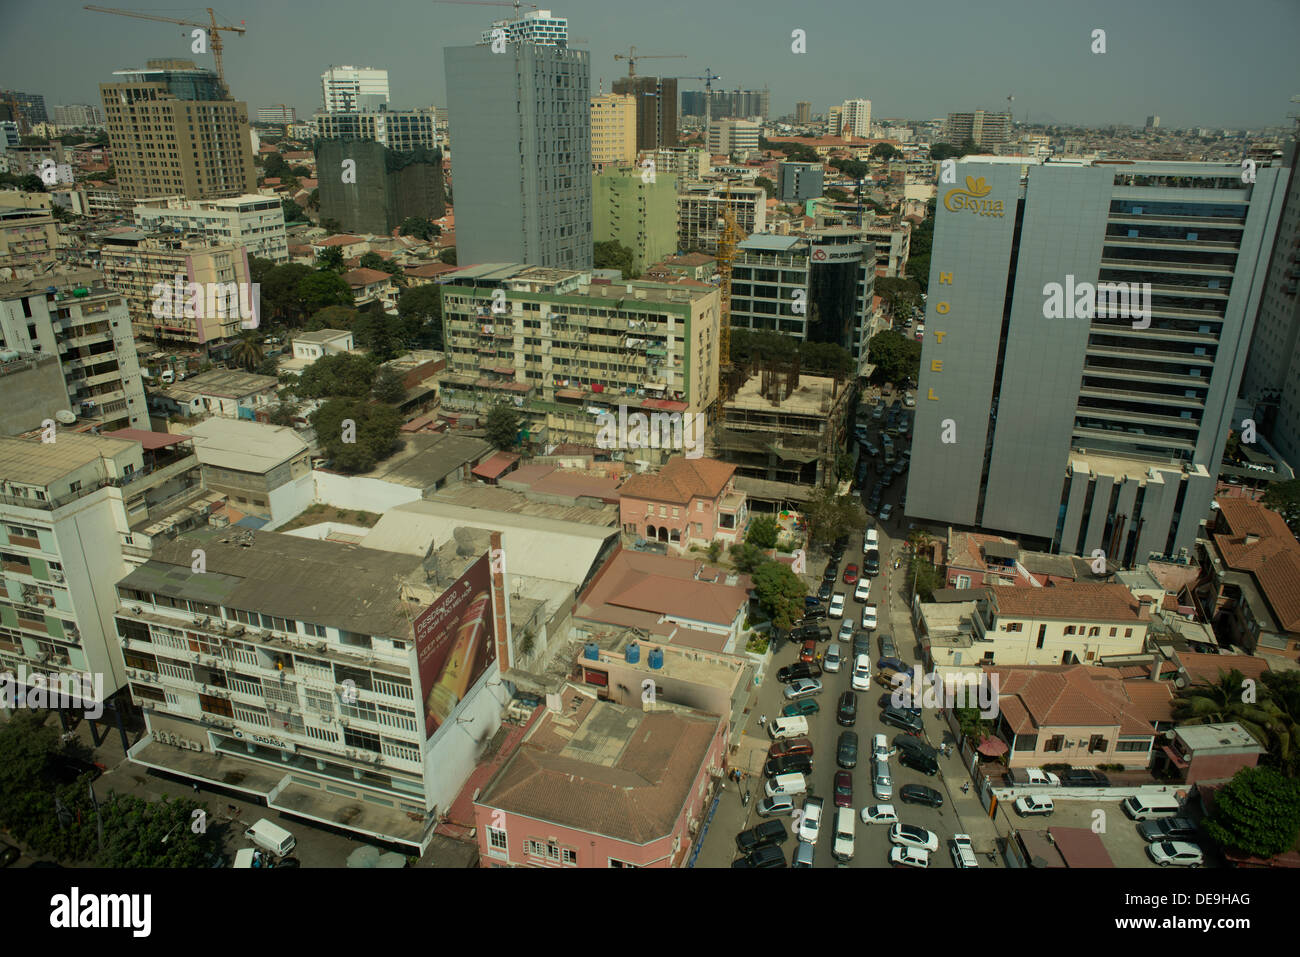 Luanda, Angola, showing new hotels and slum buildings - Stock Image